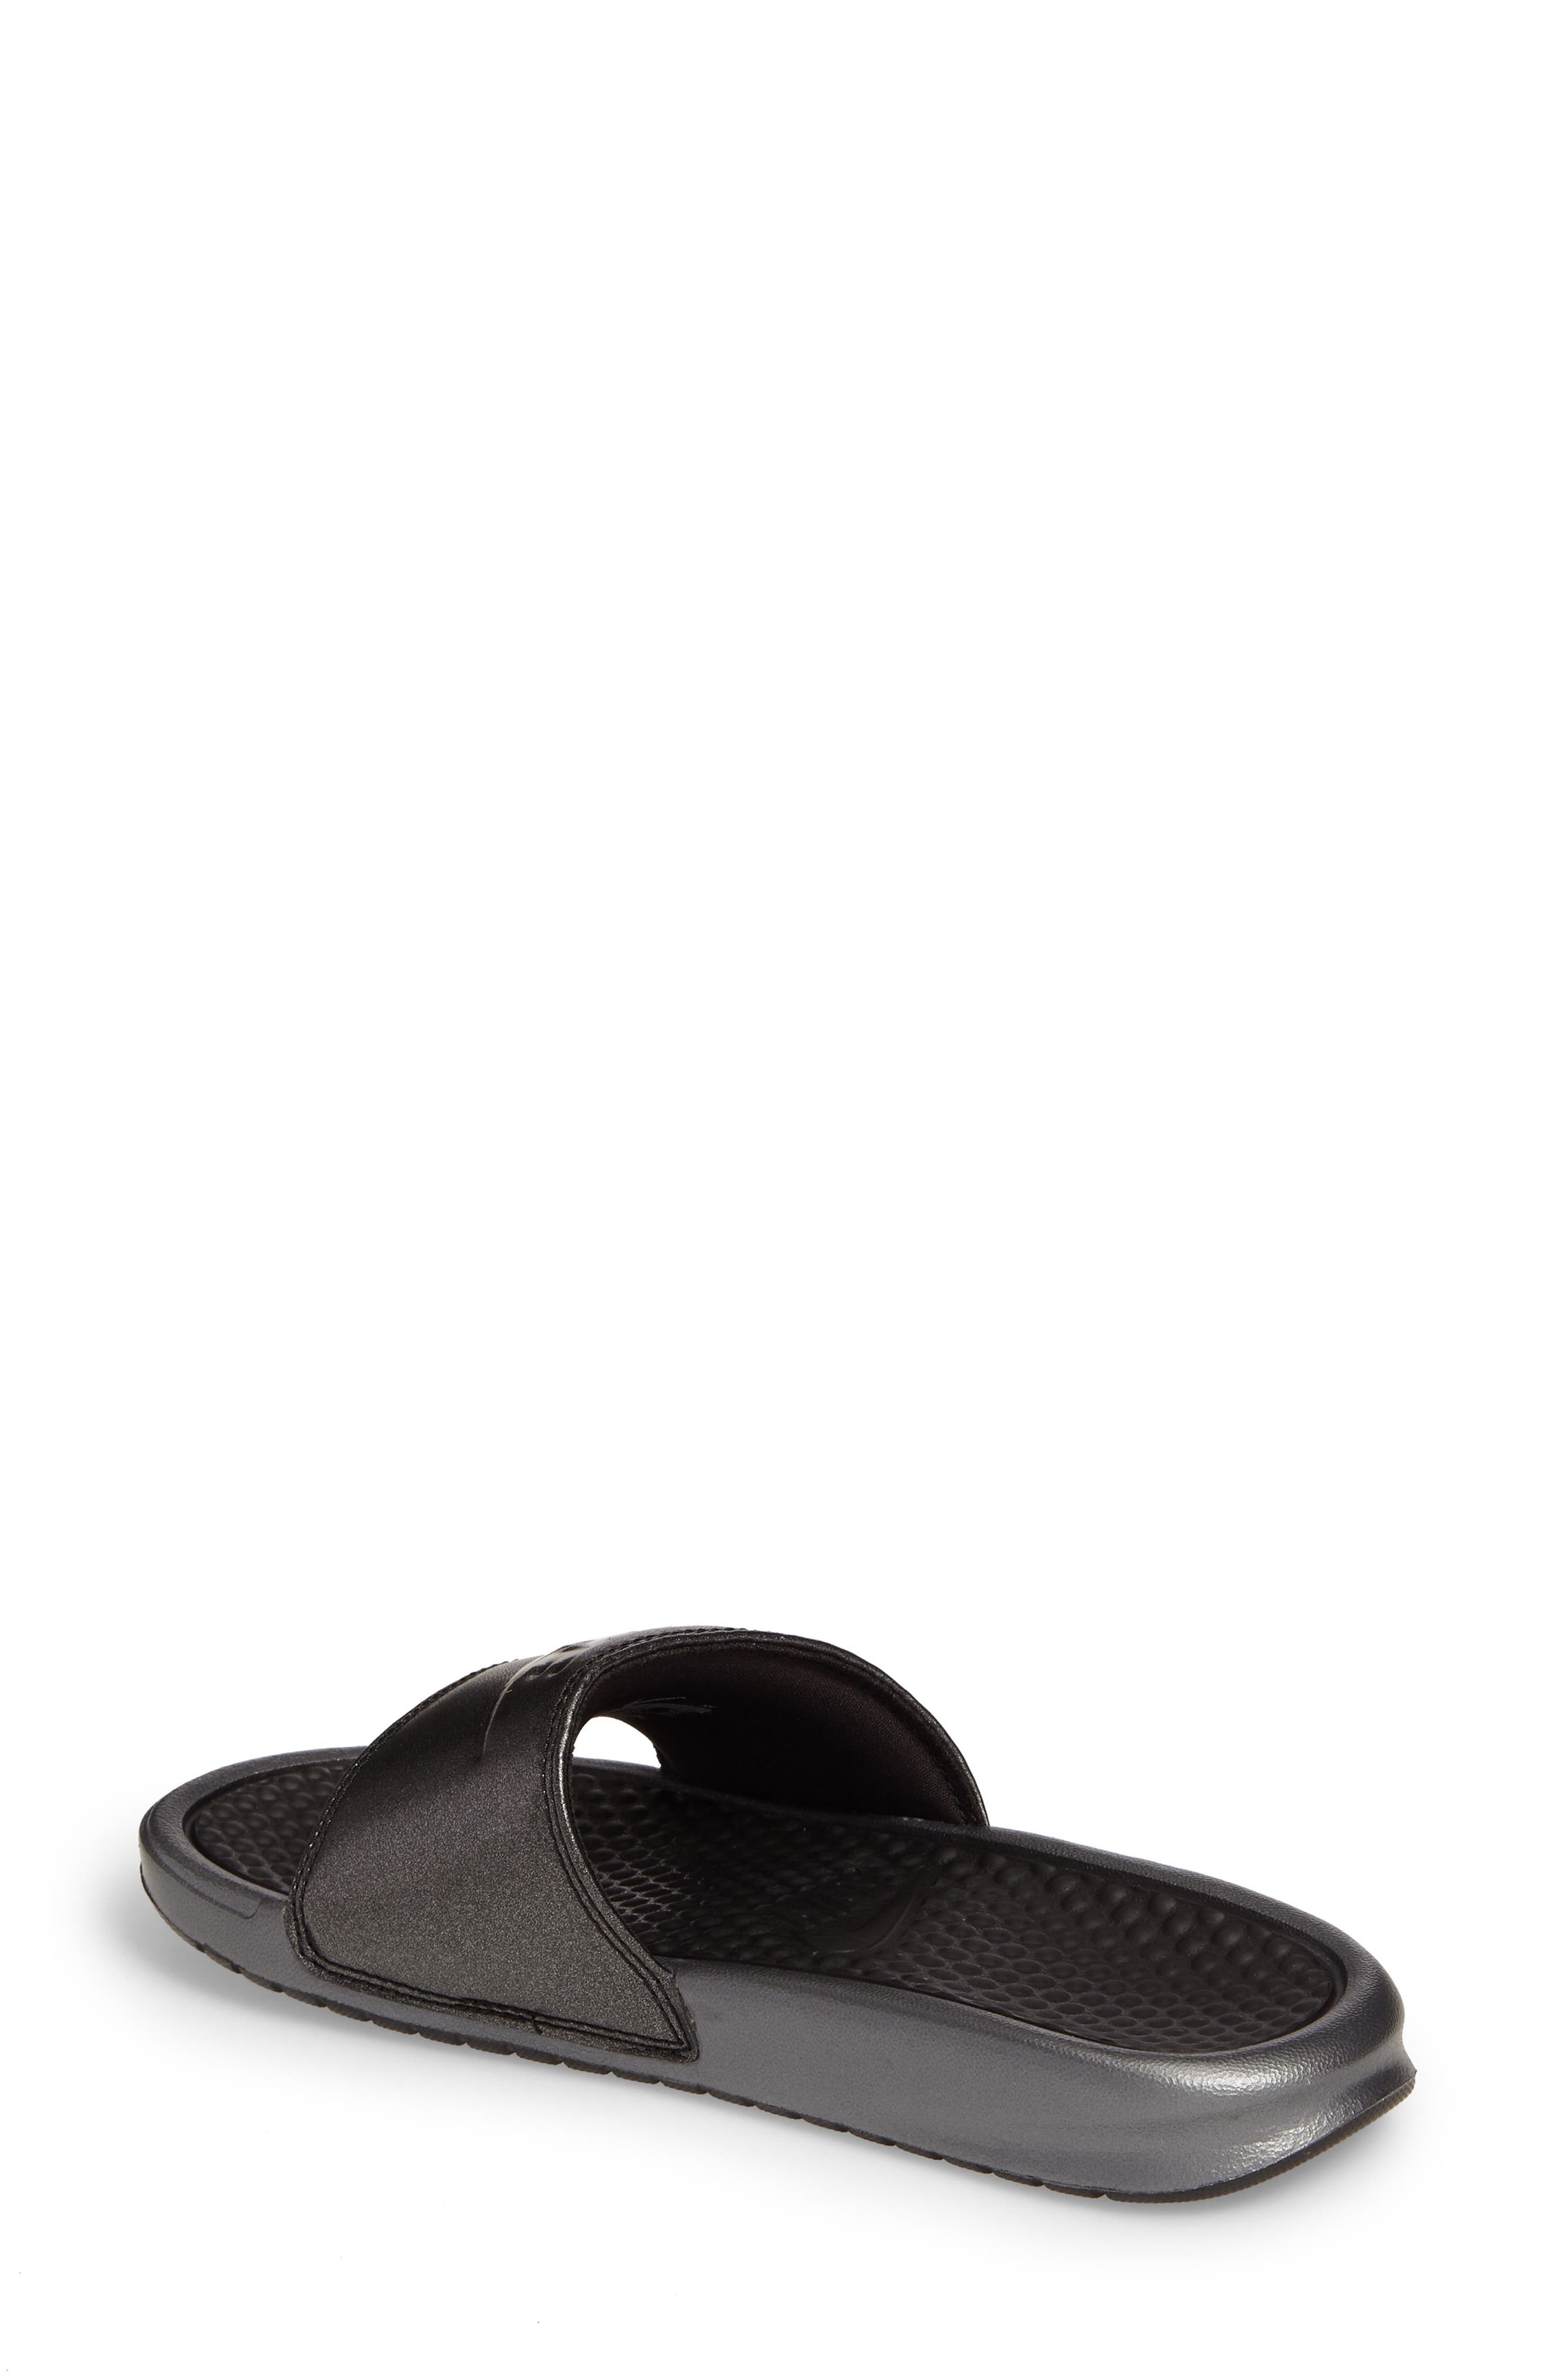 Benassi Slide Sandal,                             Alternate thumbnail 2, color,                             001